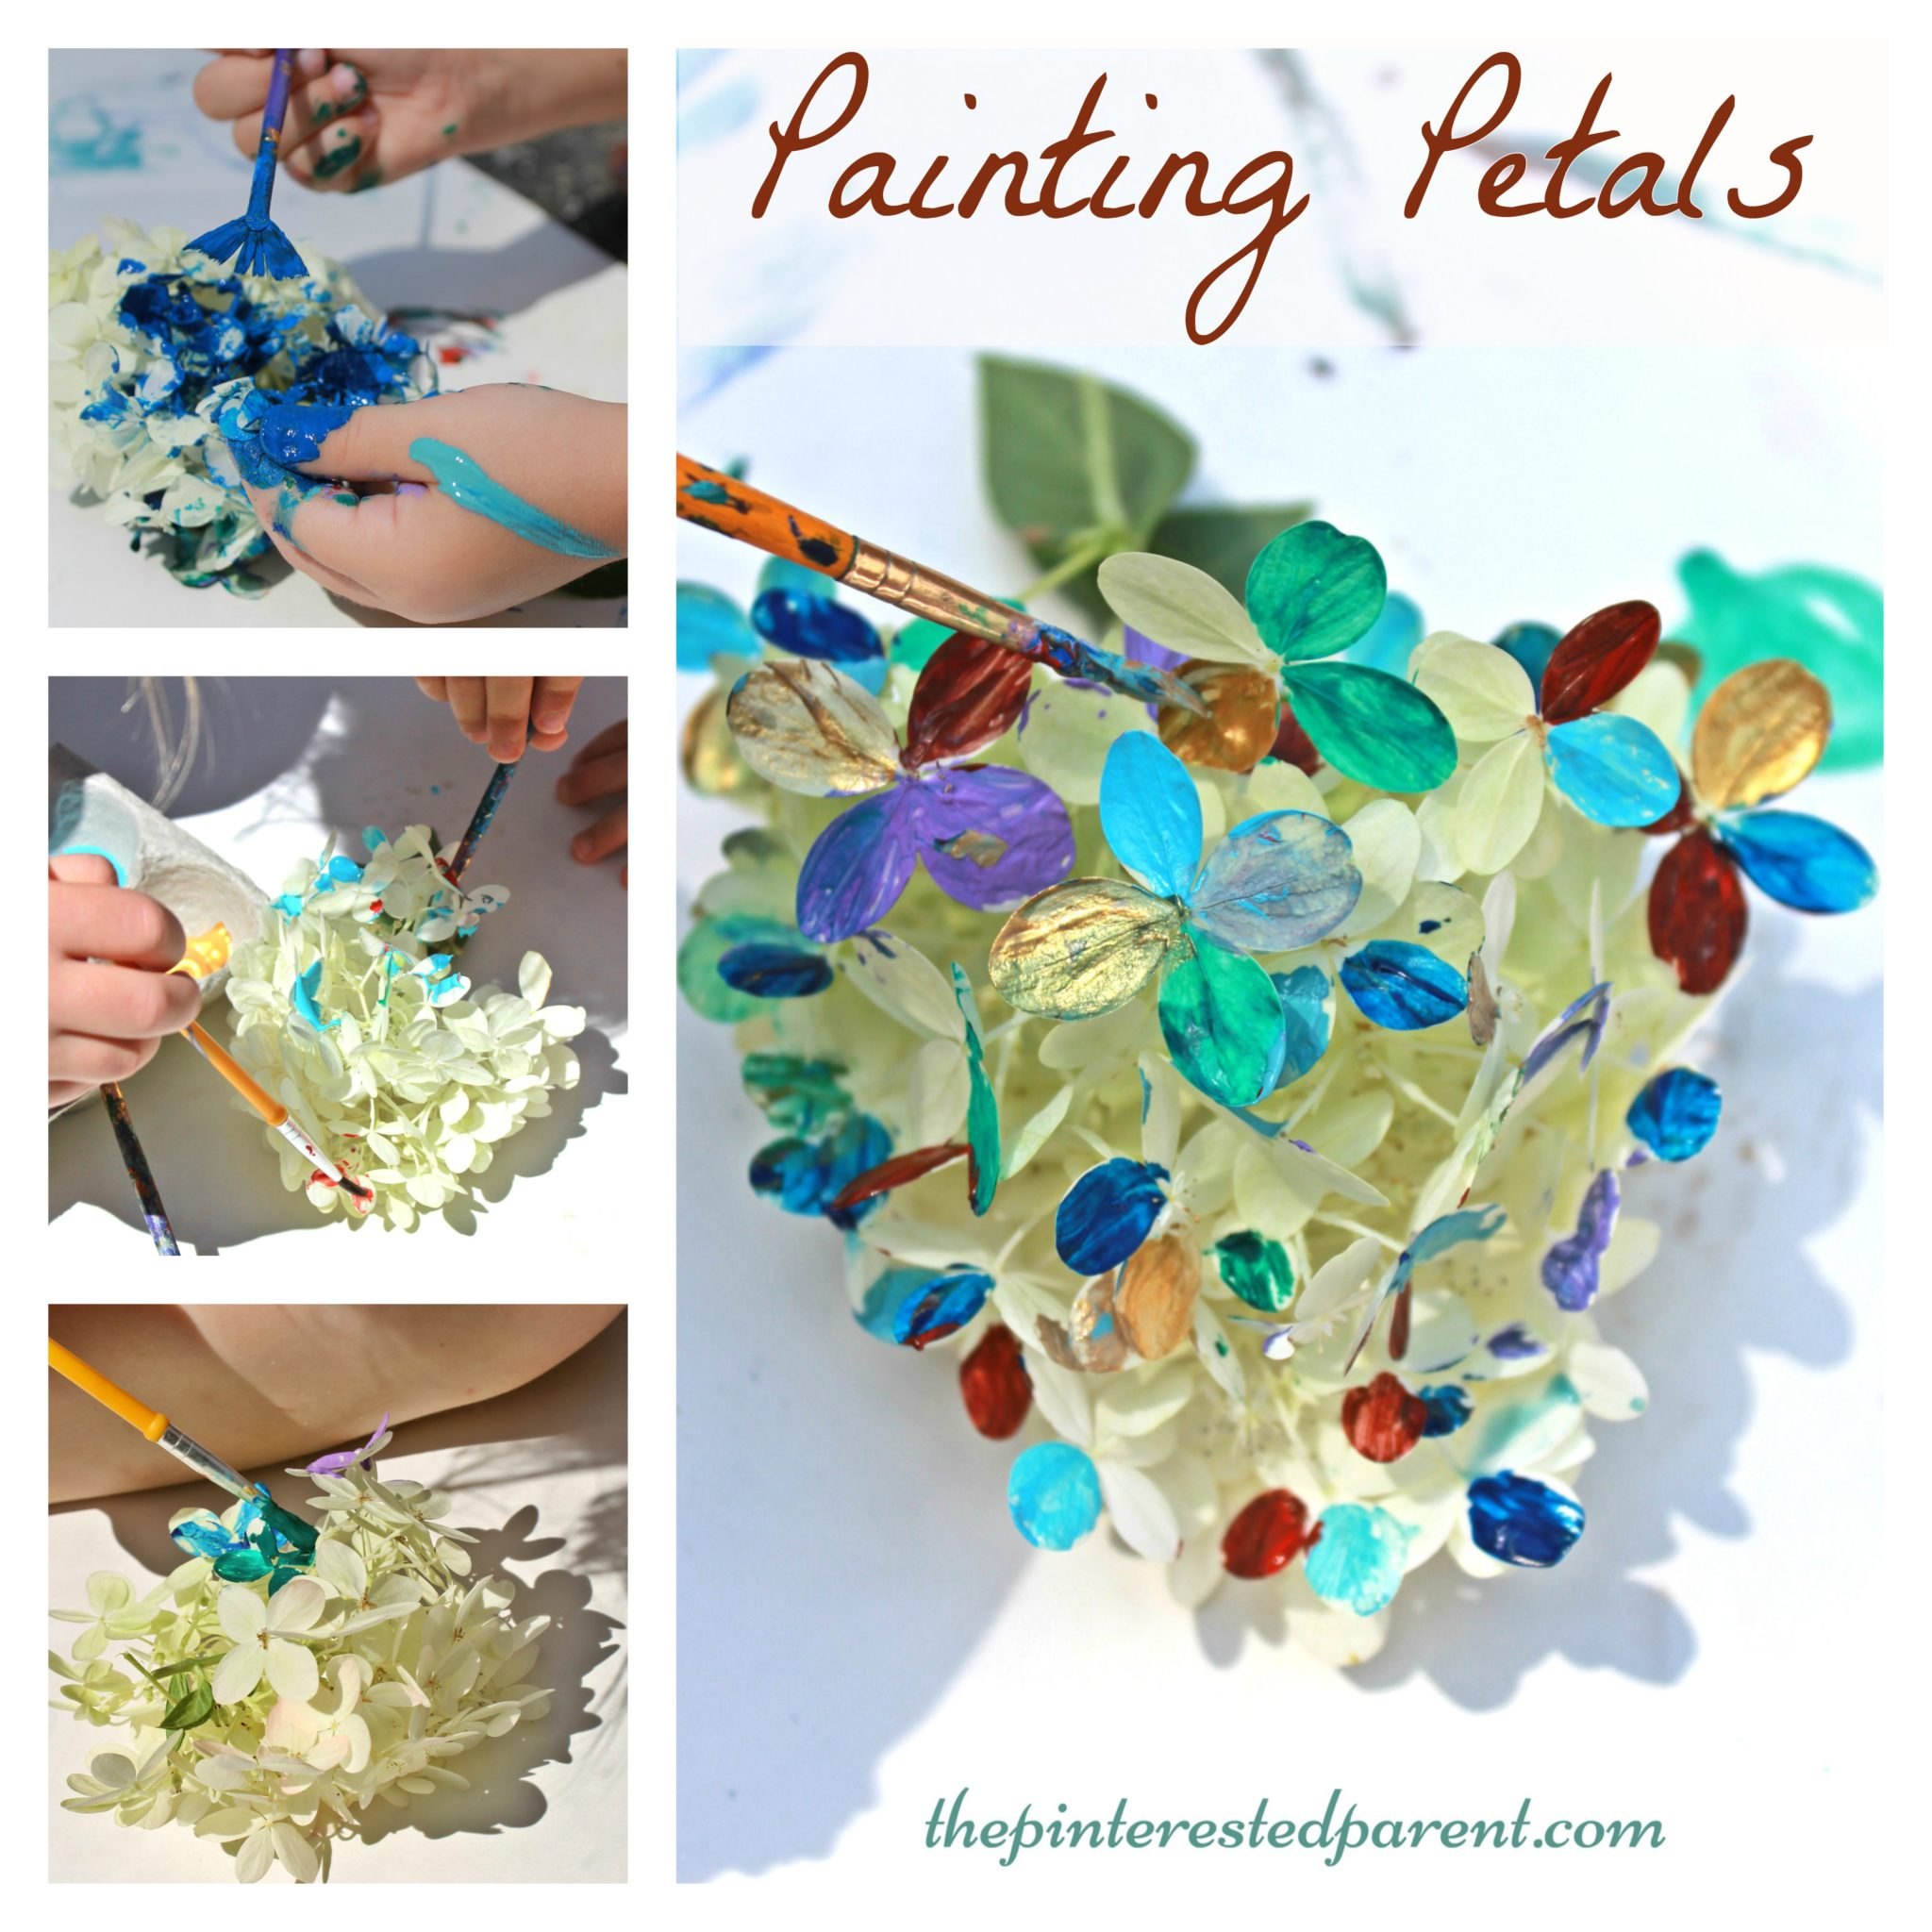 Painting Petals Activity The Pinterested Parent